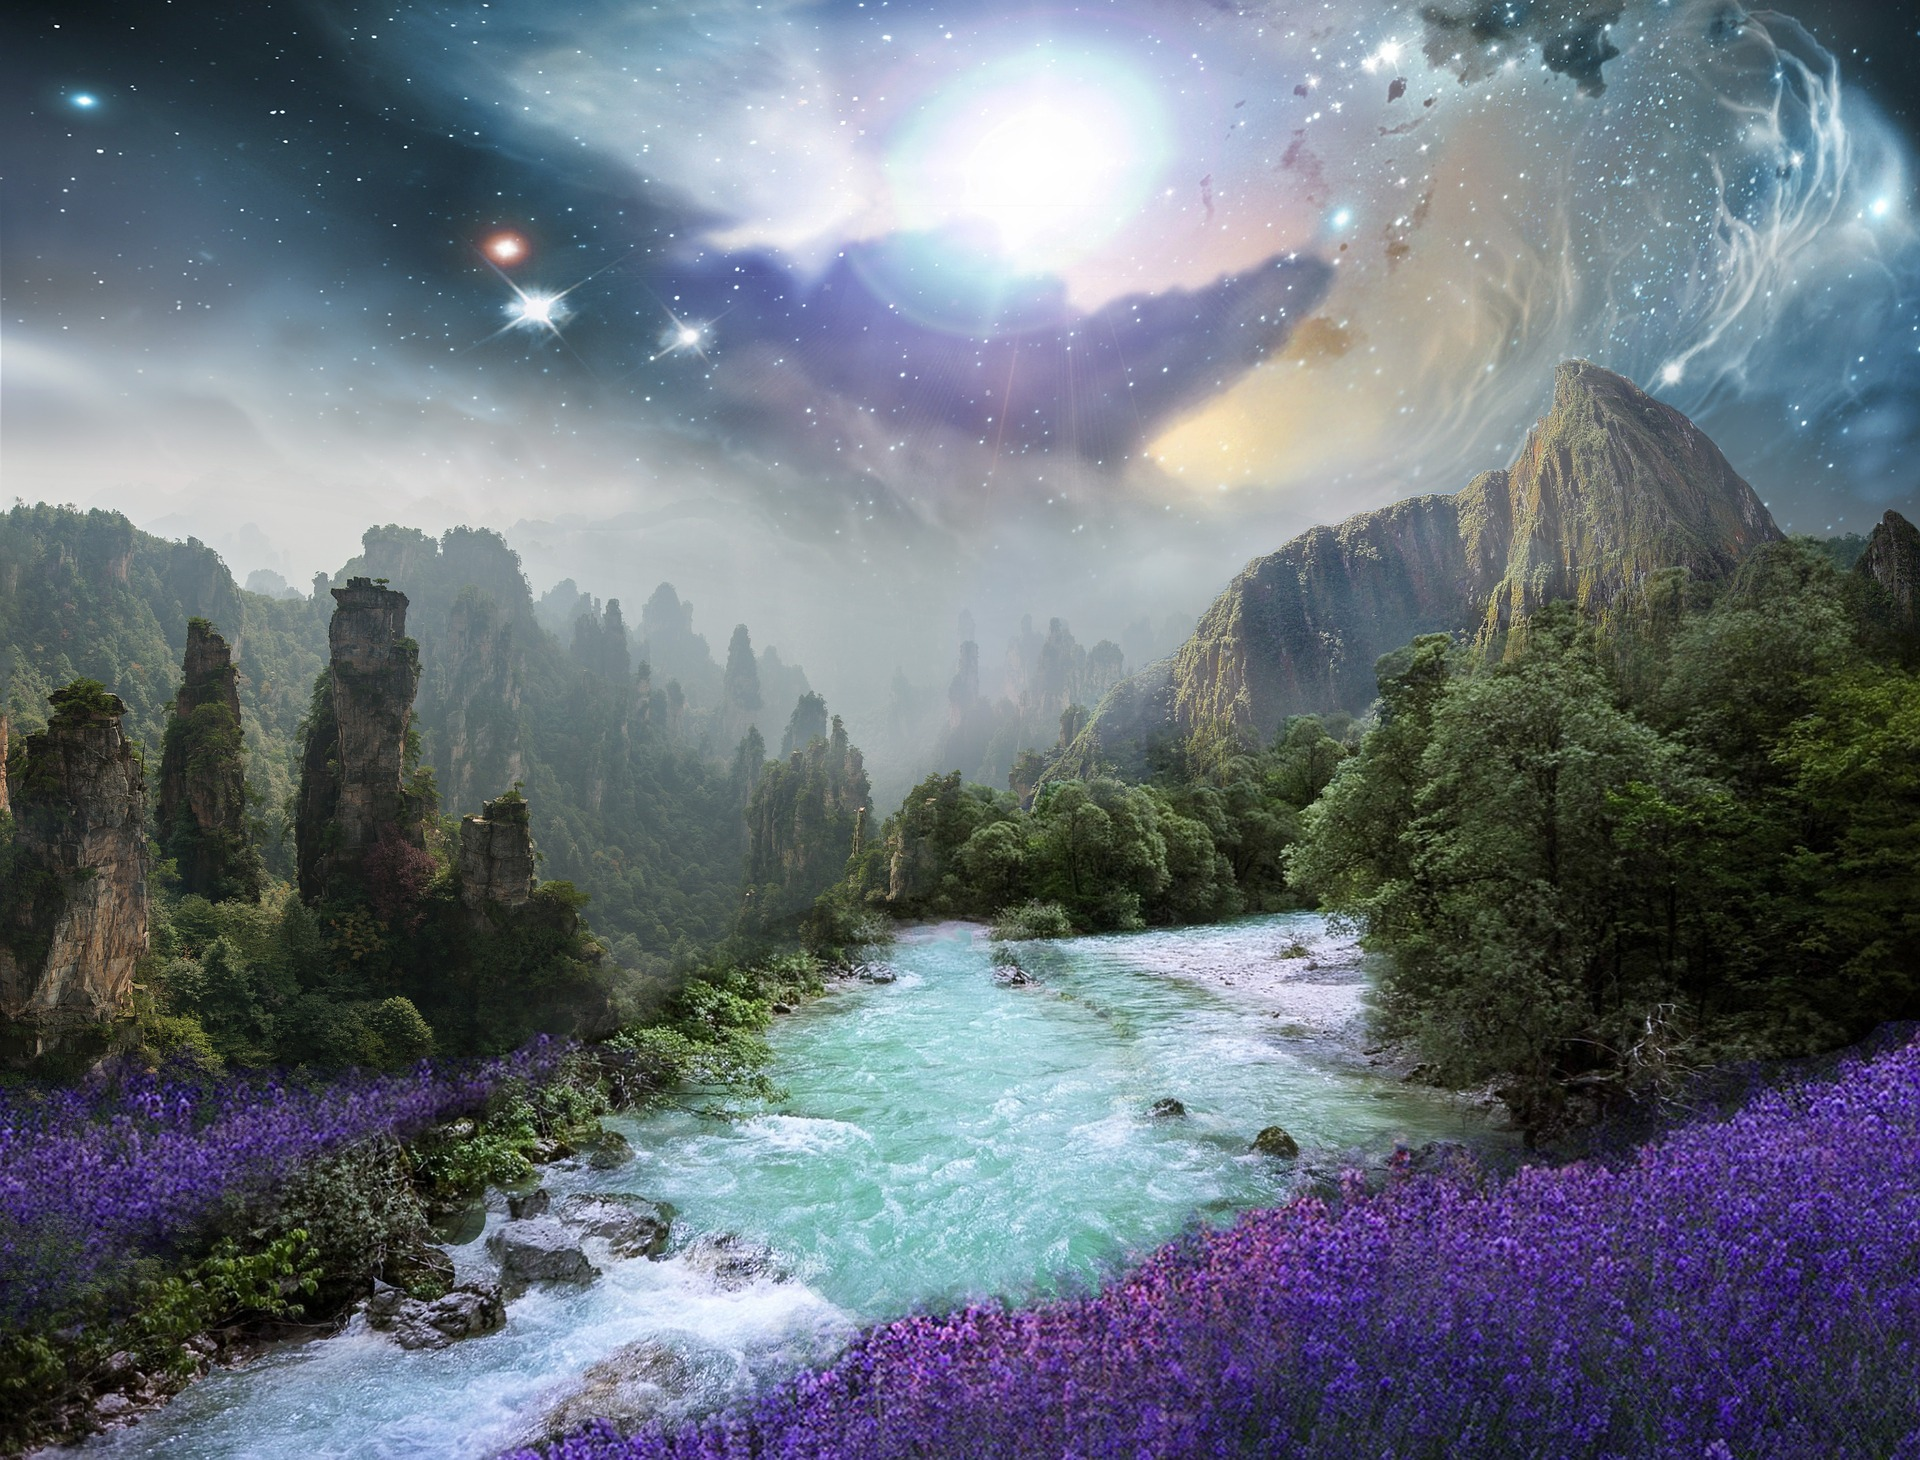 Fantasy landscape with river, flowers meadow, treens, nebula, and universe